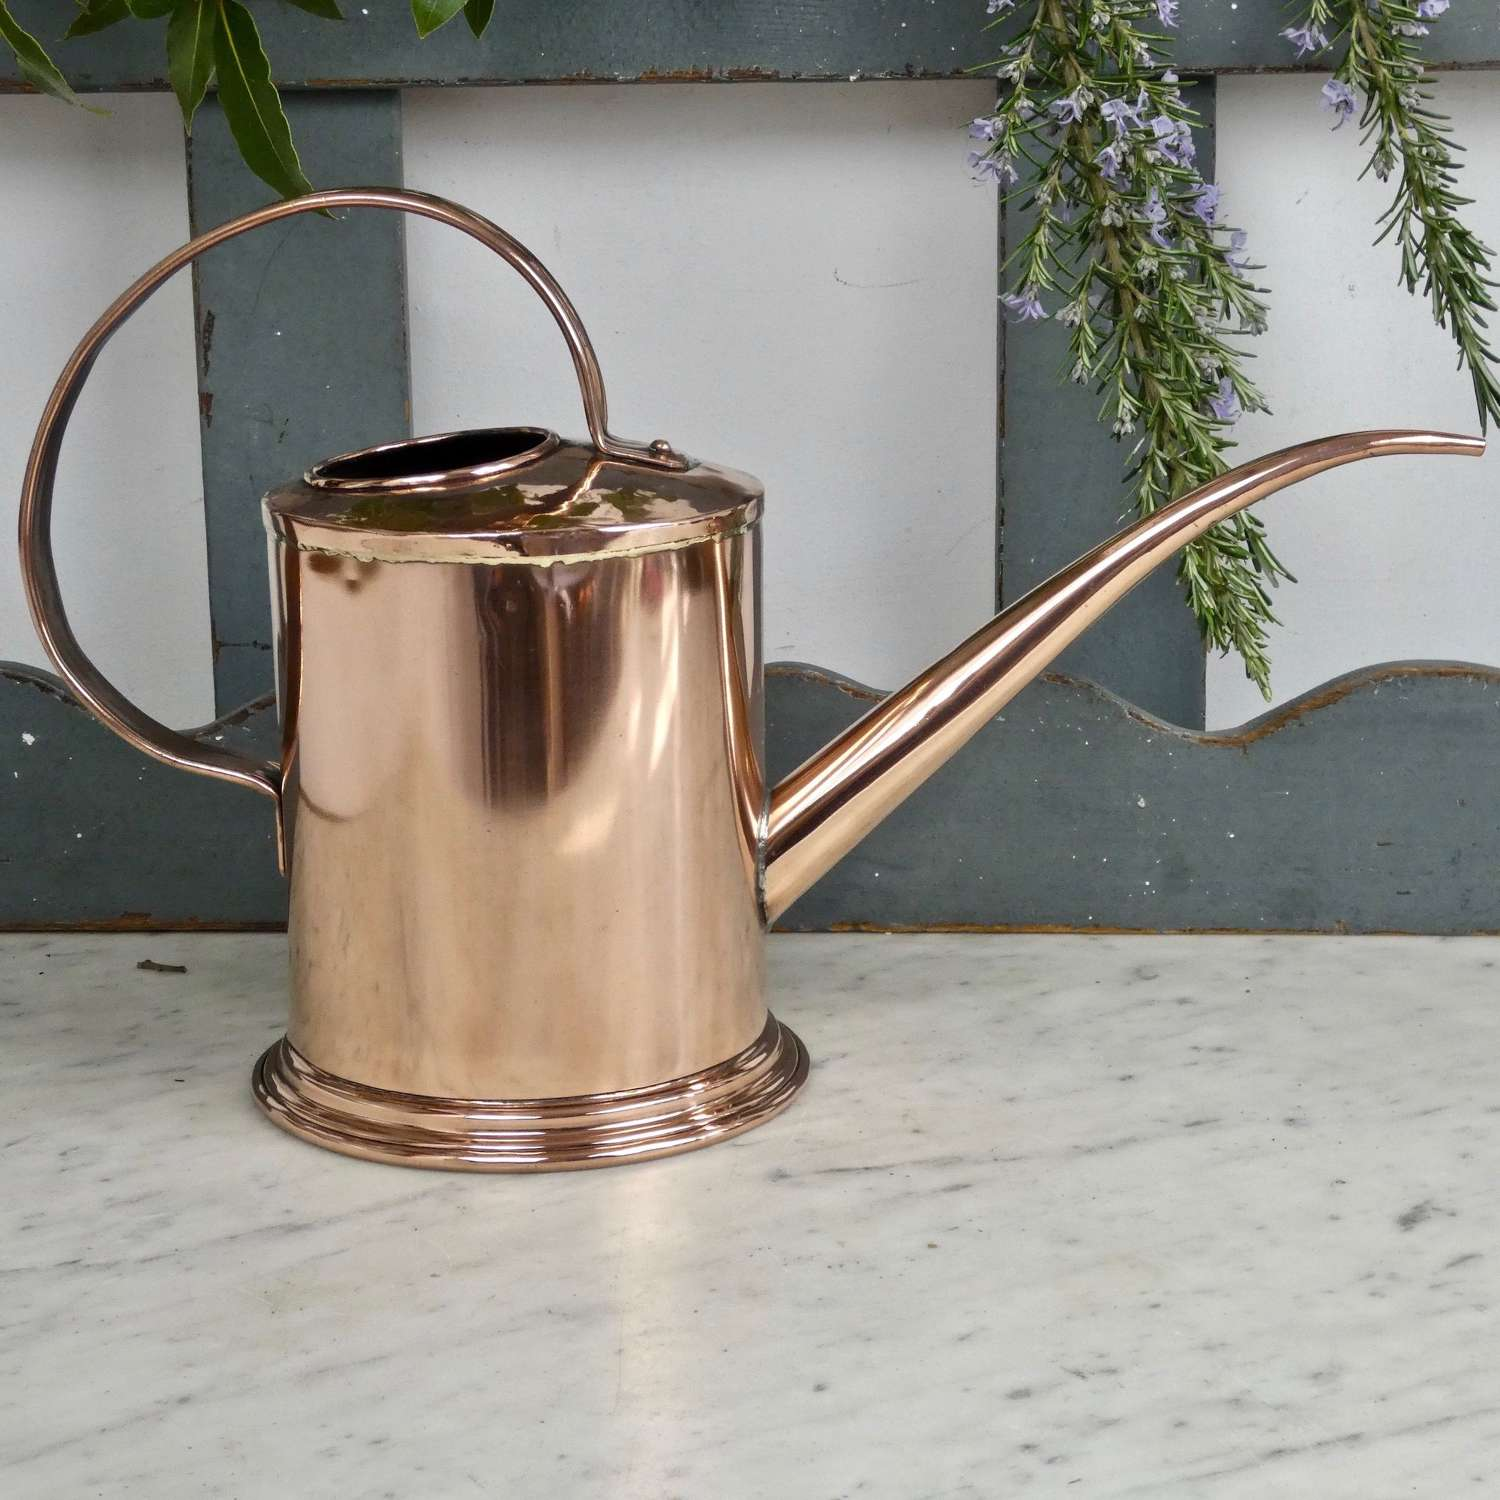 Small, French watering can